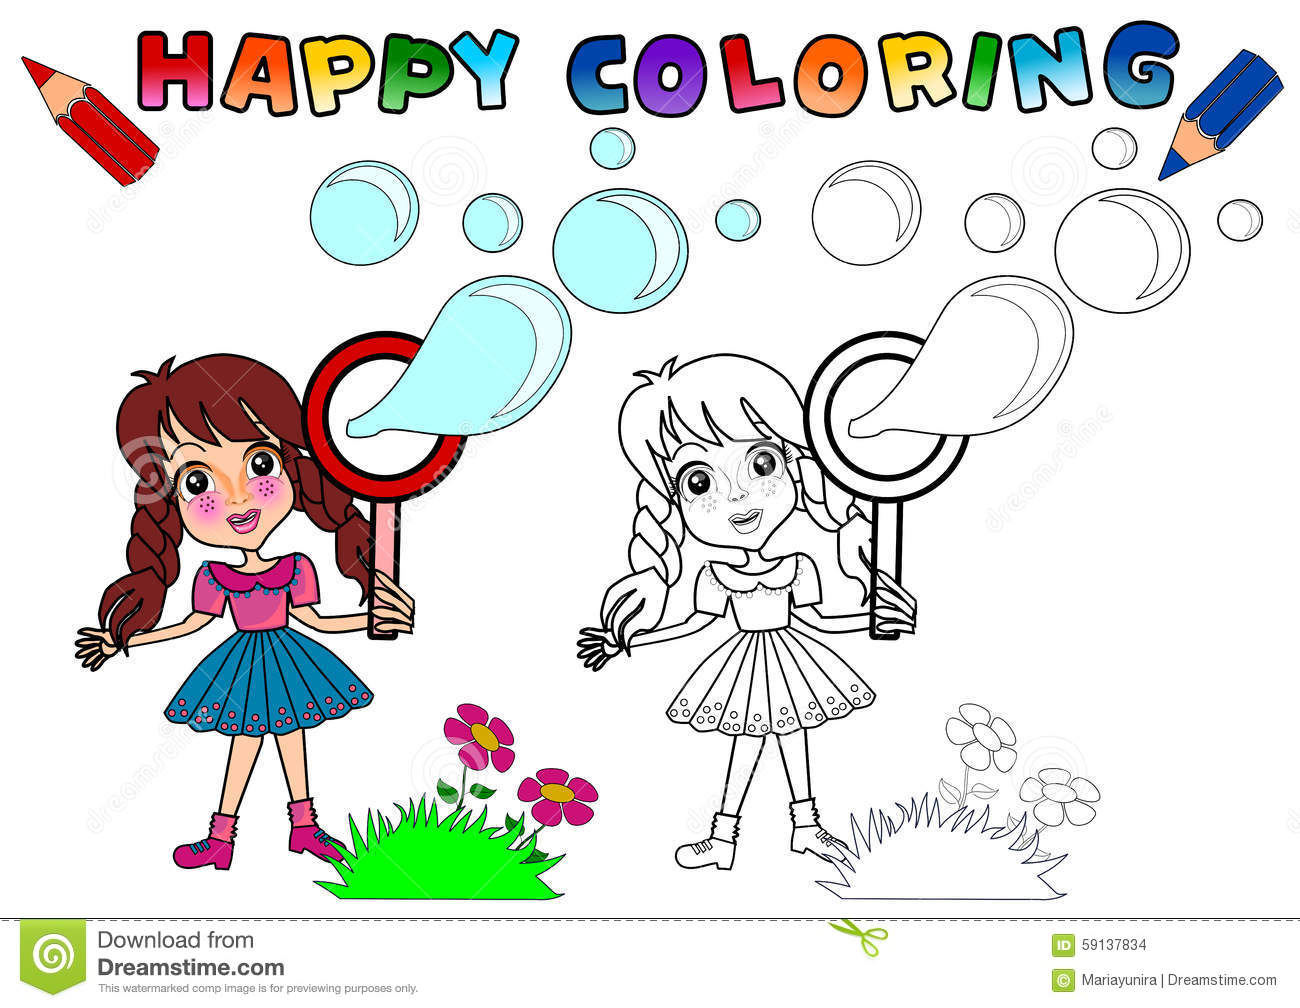 kids coloring book princess screenshot gallery children coloring - Children Coloring Book